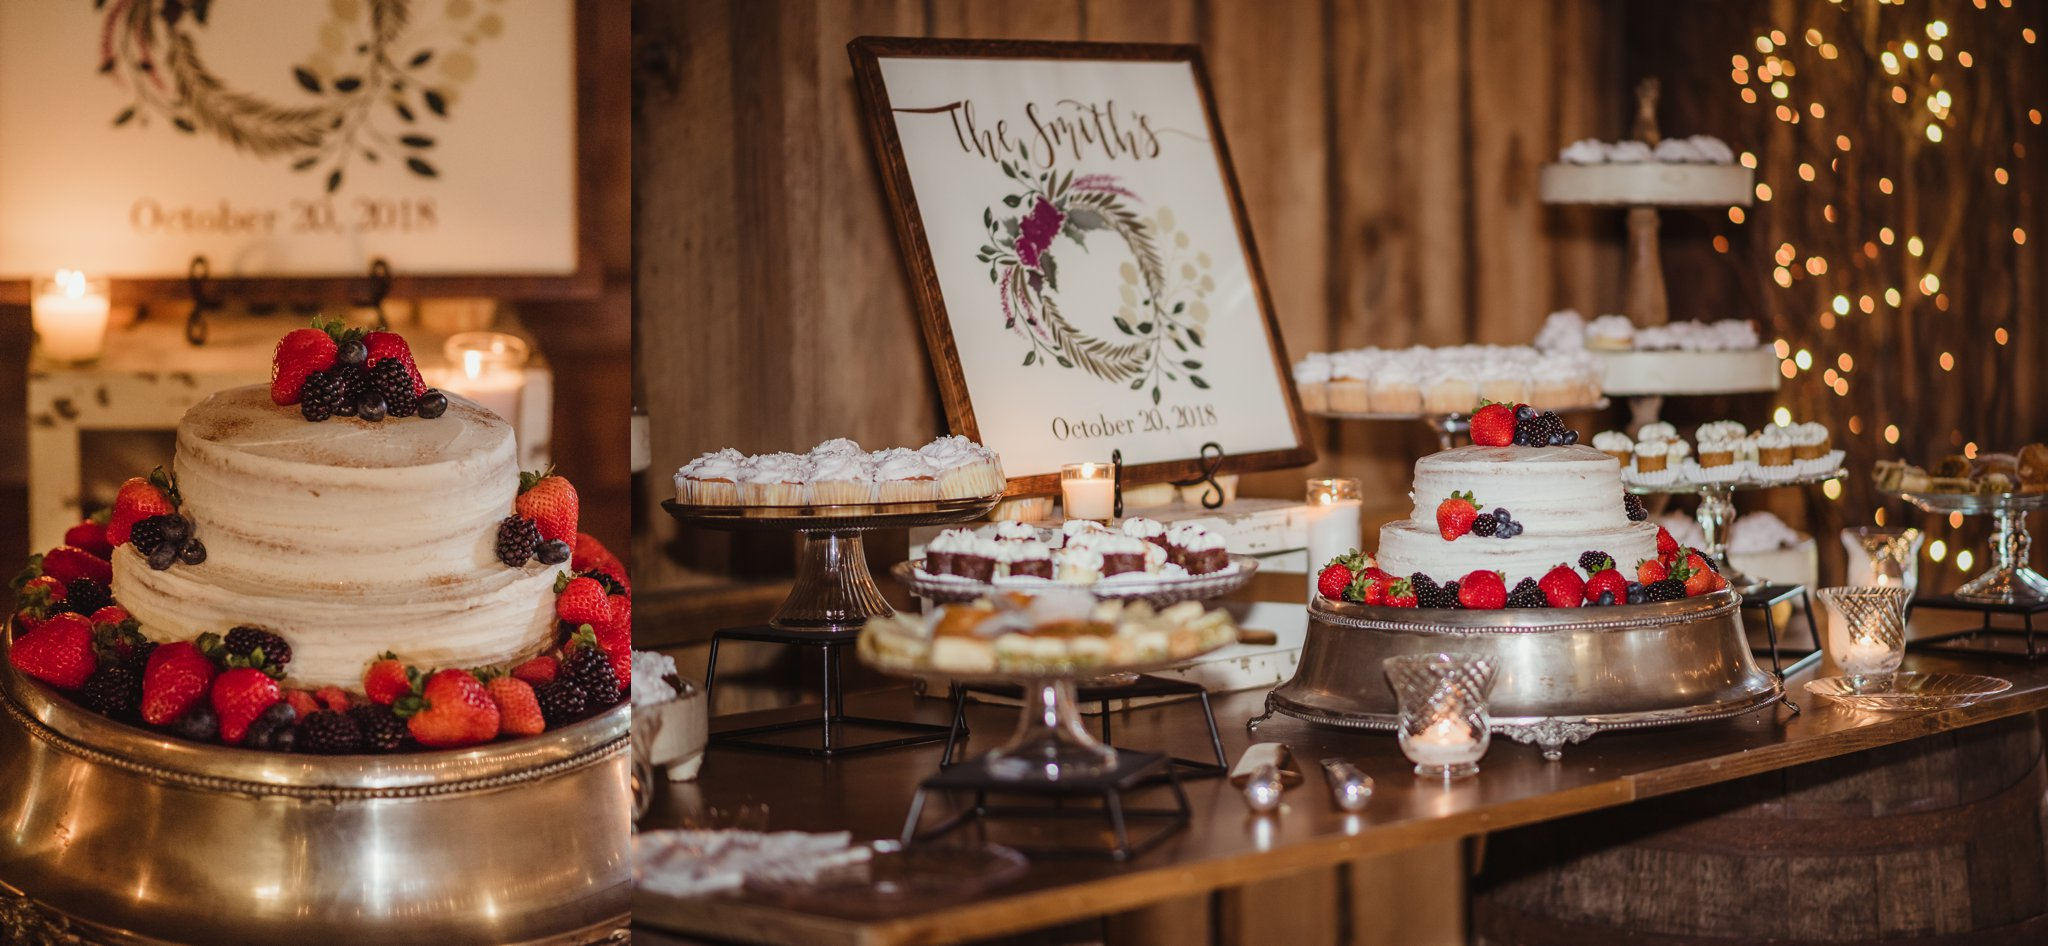 The dessert table at their wedding reception at the Little Herb House in Raleigh, North Carolina included pie, cupcakes, and cake adorned with fresh fruit. Photos by Rose Trail Images.